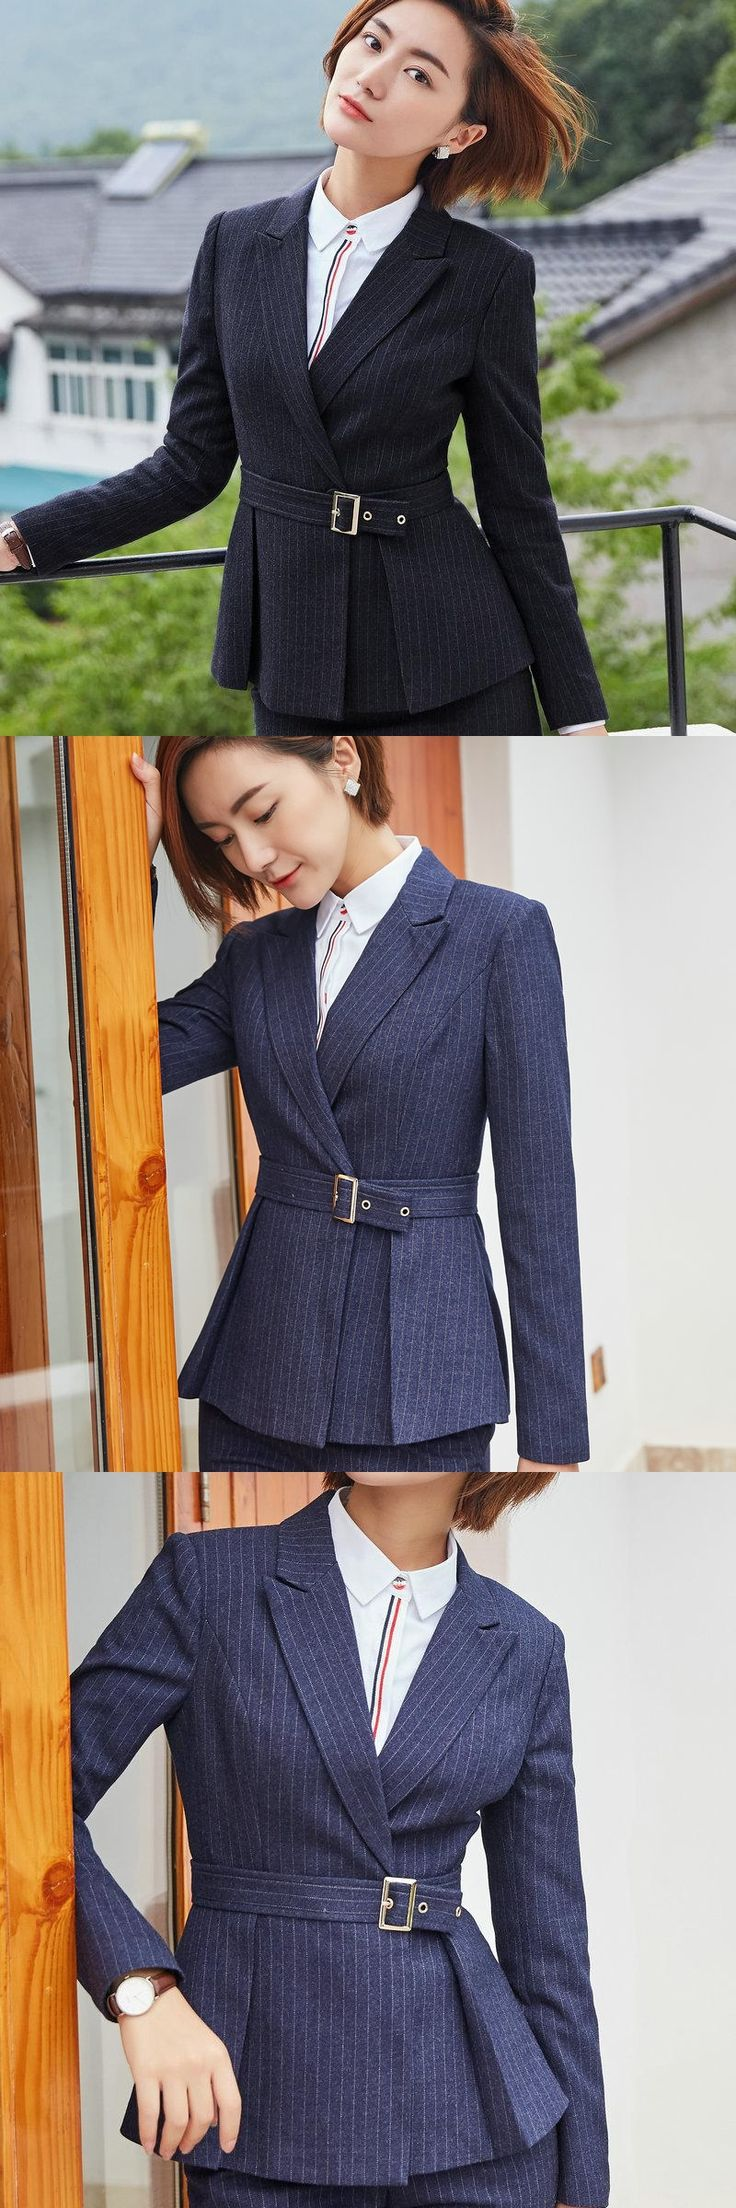 Office Lady Elegant Jacket Blazer Femme Long Sleeve Slim Blazers Mujer Single Breasted Formal Jackets Blaser Women Suit Coat